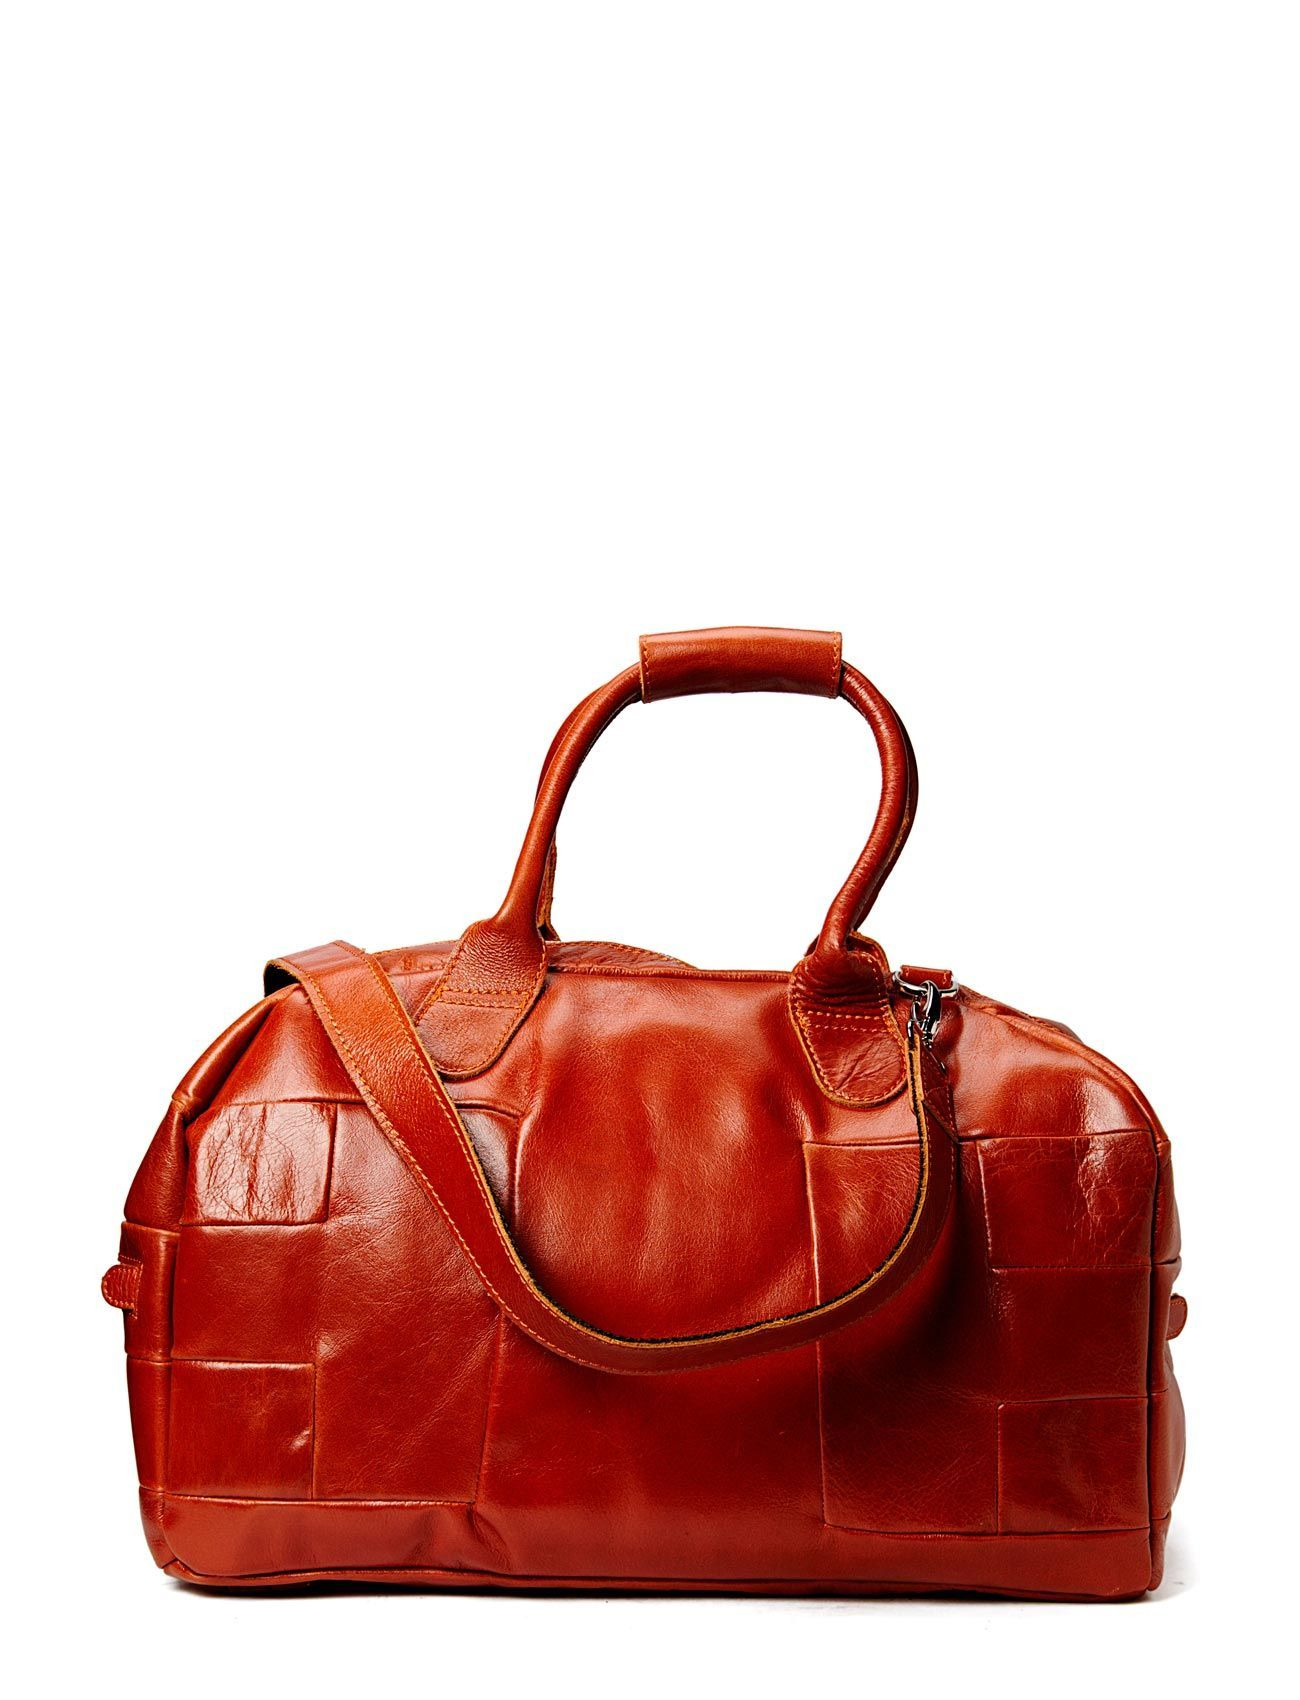 Image of Ball Bag Taske Brun ROYAL REPUBLIQ (2430575899)